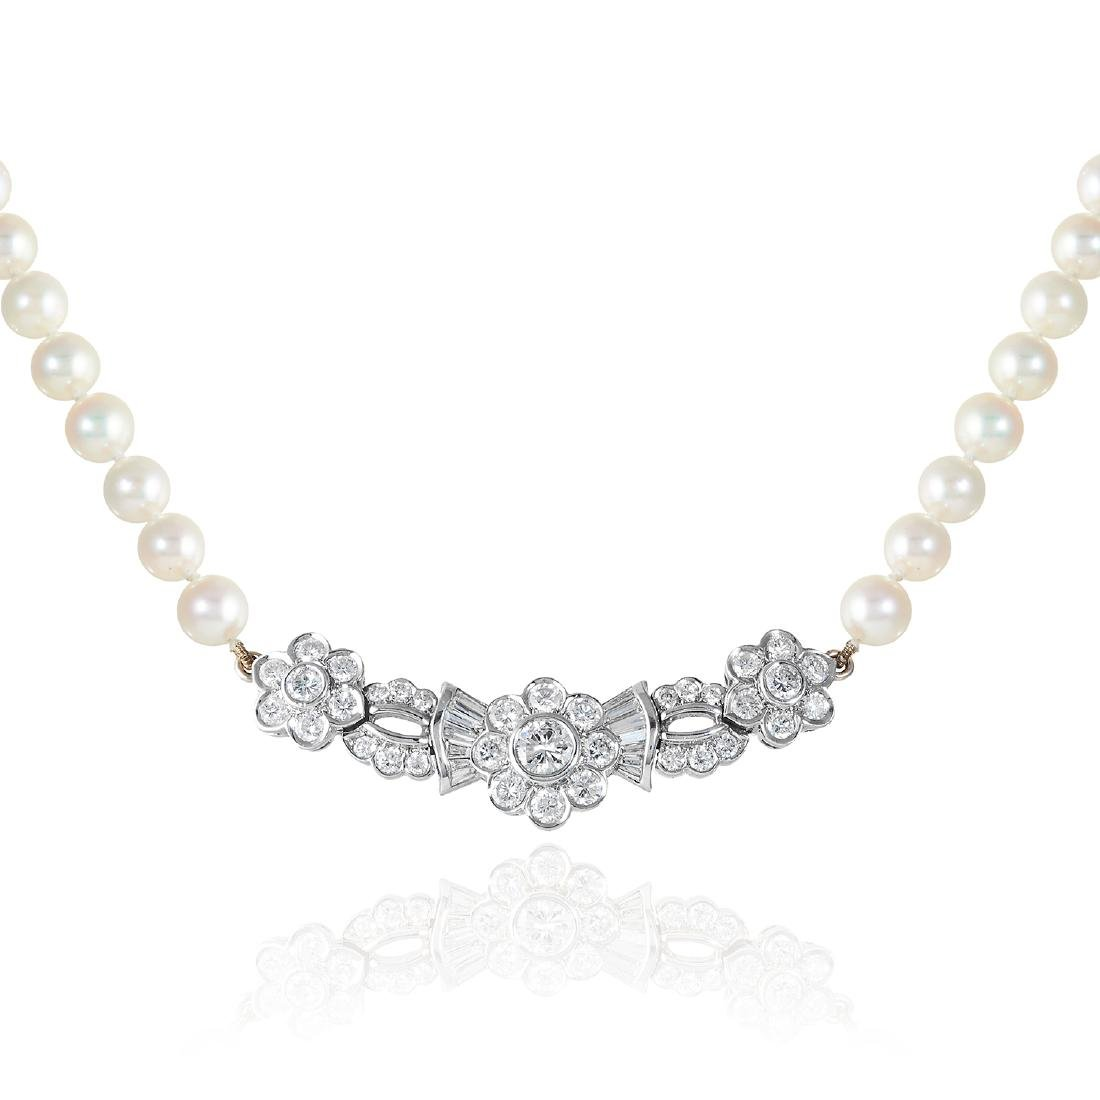 A PEARL AND DIAMOND NECKLACE in 18ct white gold,